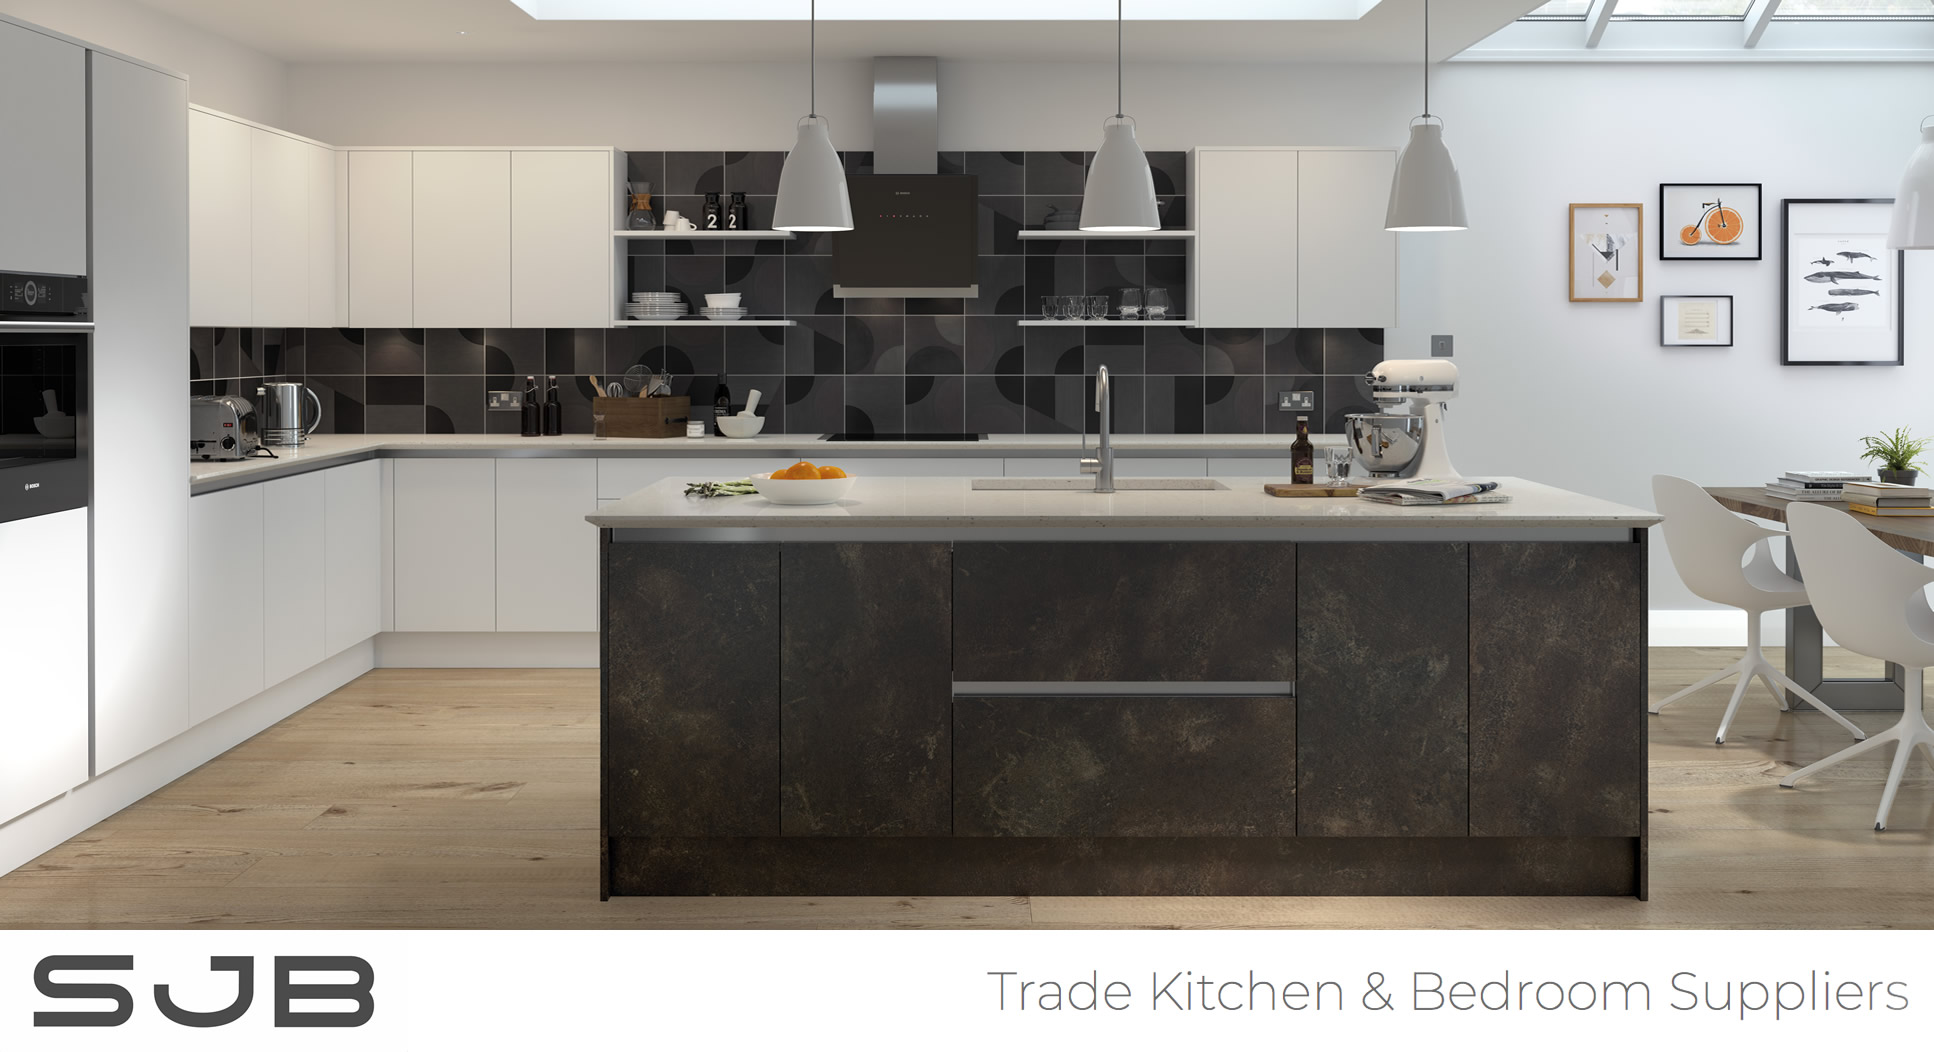 SJ Ball - Trade & Contract Kitchen & Bedroom Suppliers